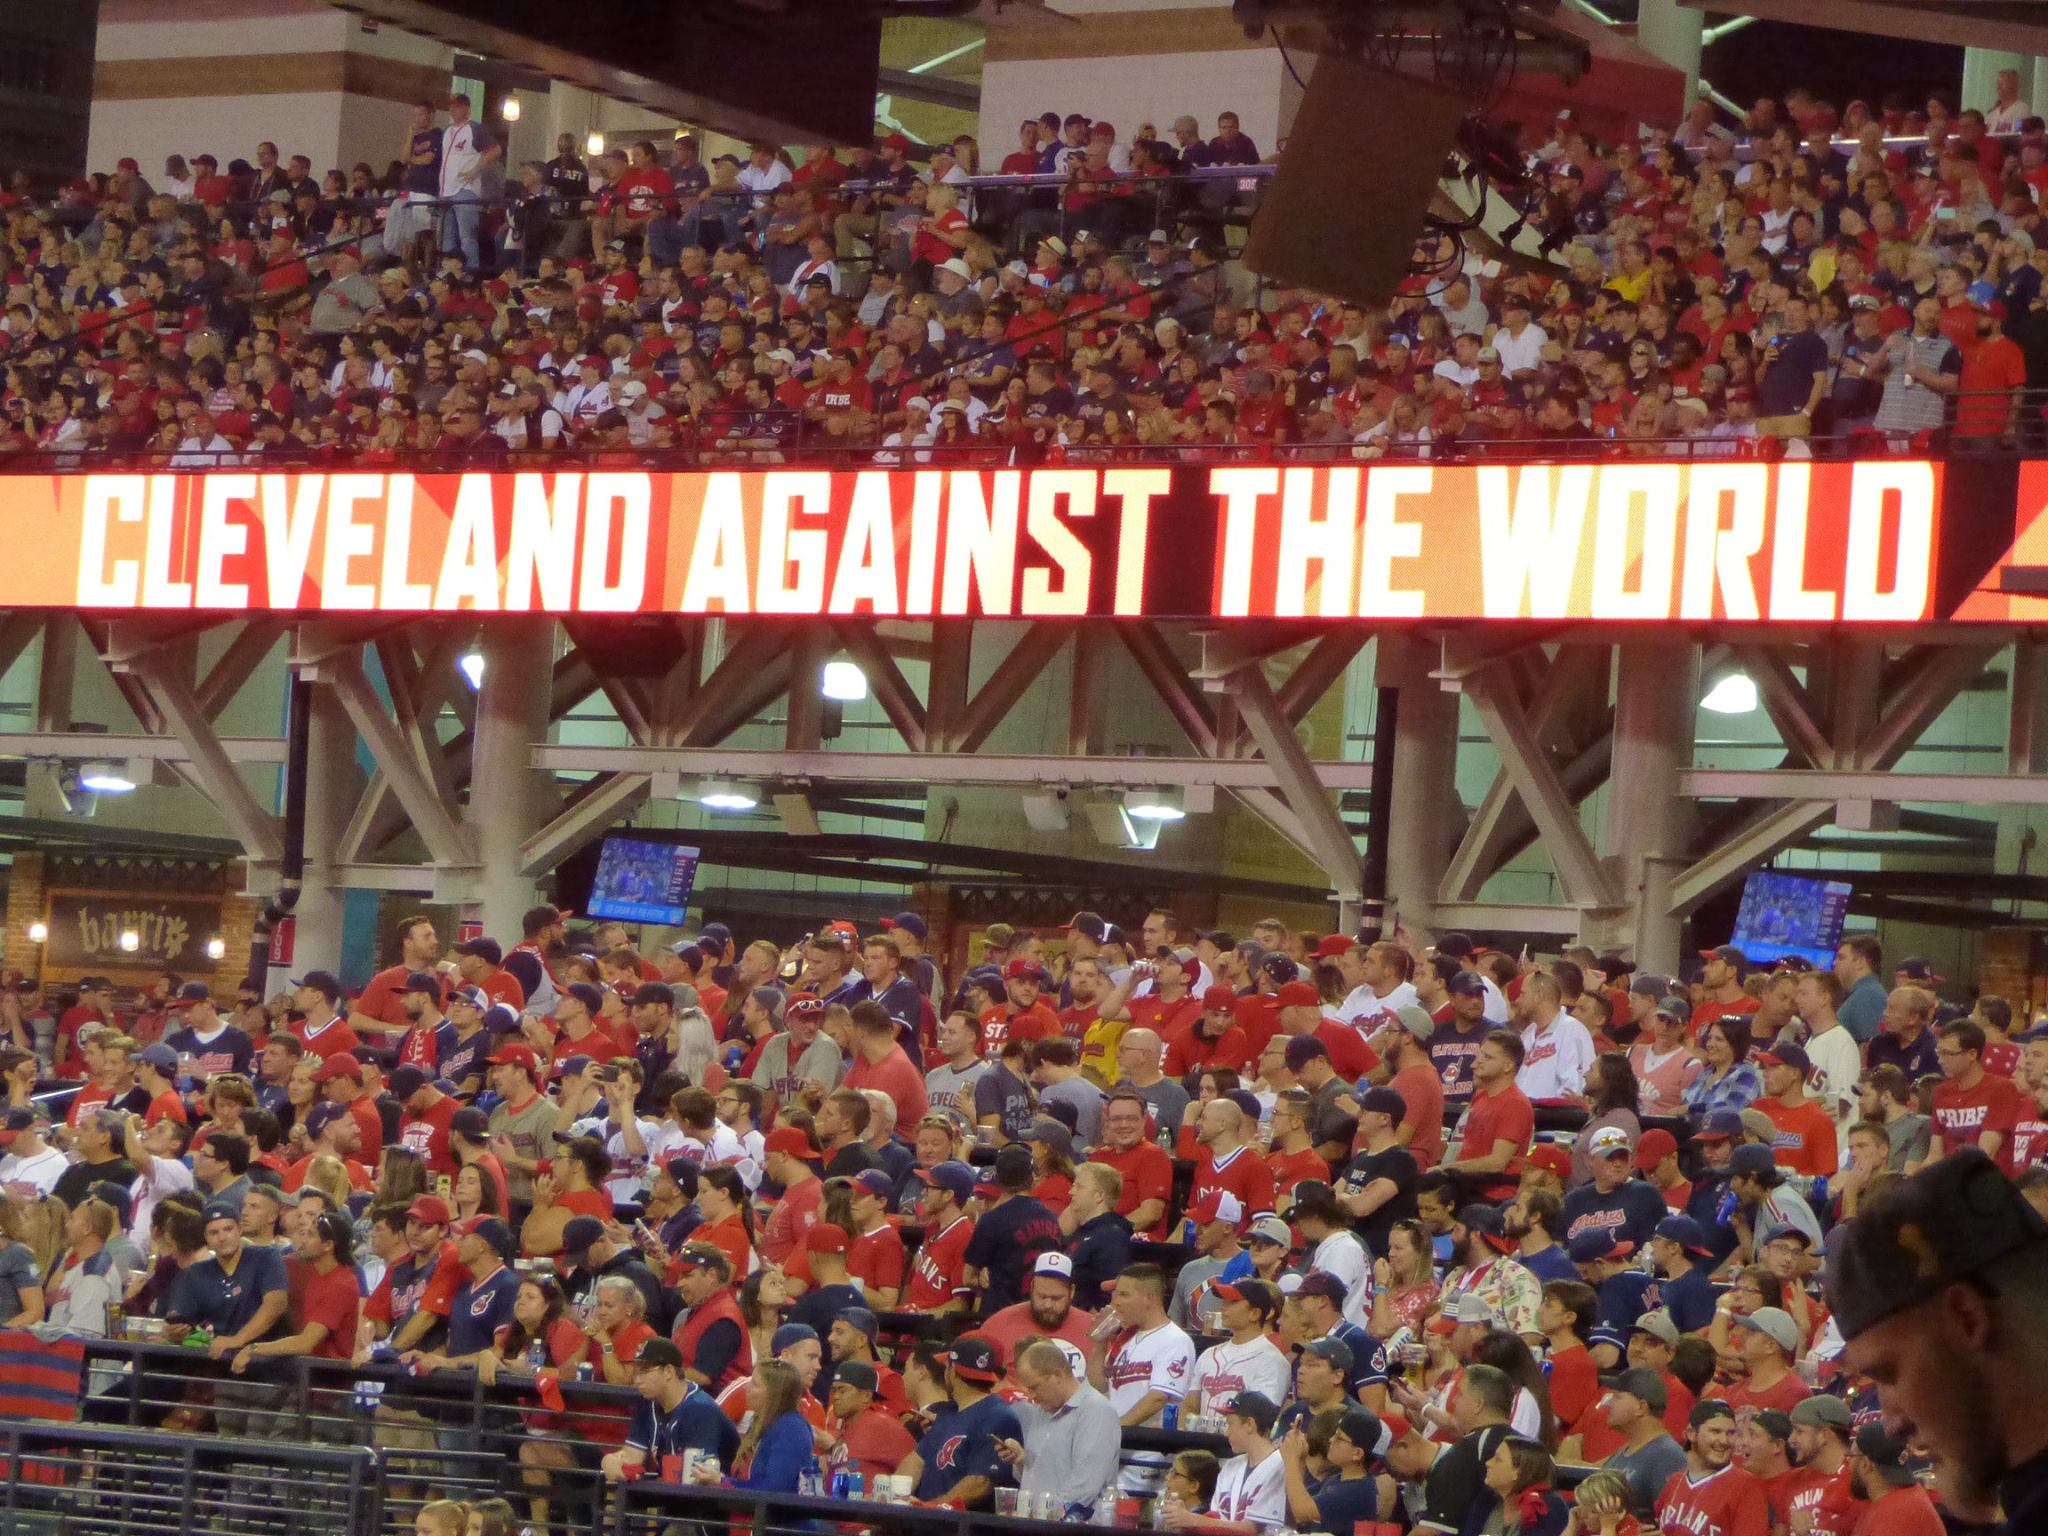 Cleveland Against The World - Traci Chris